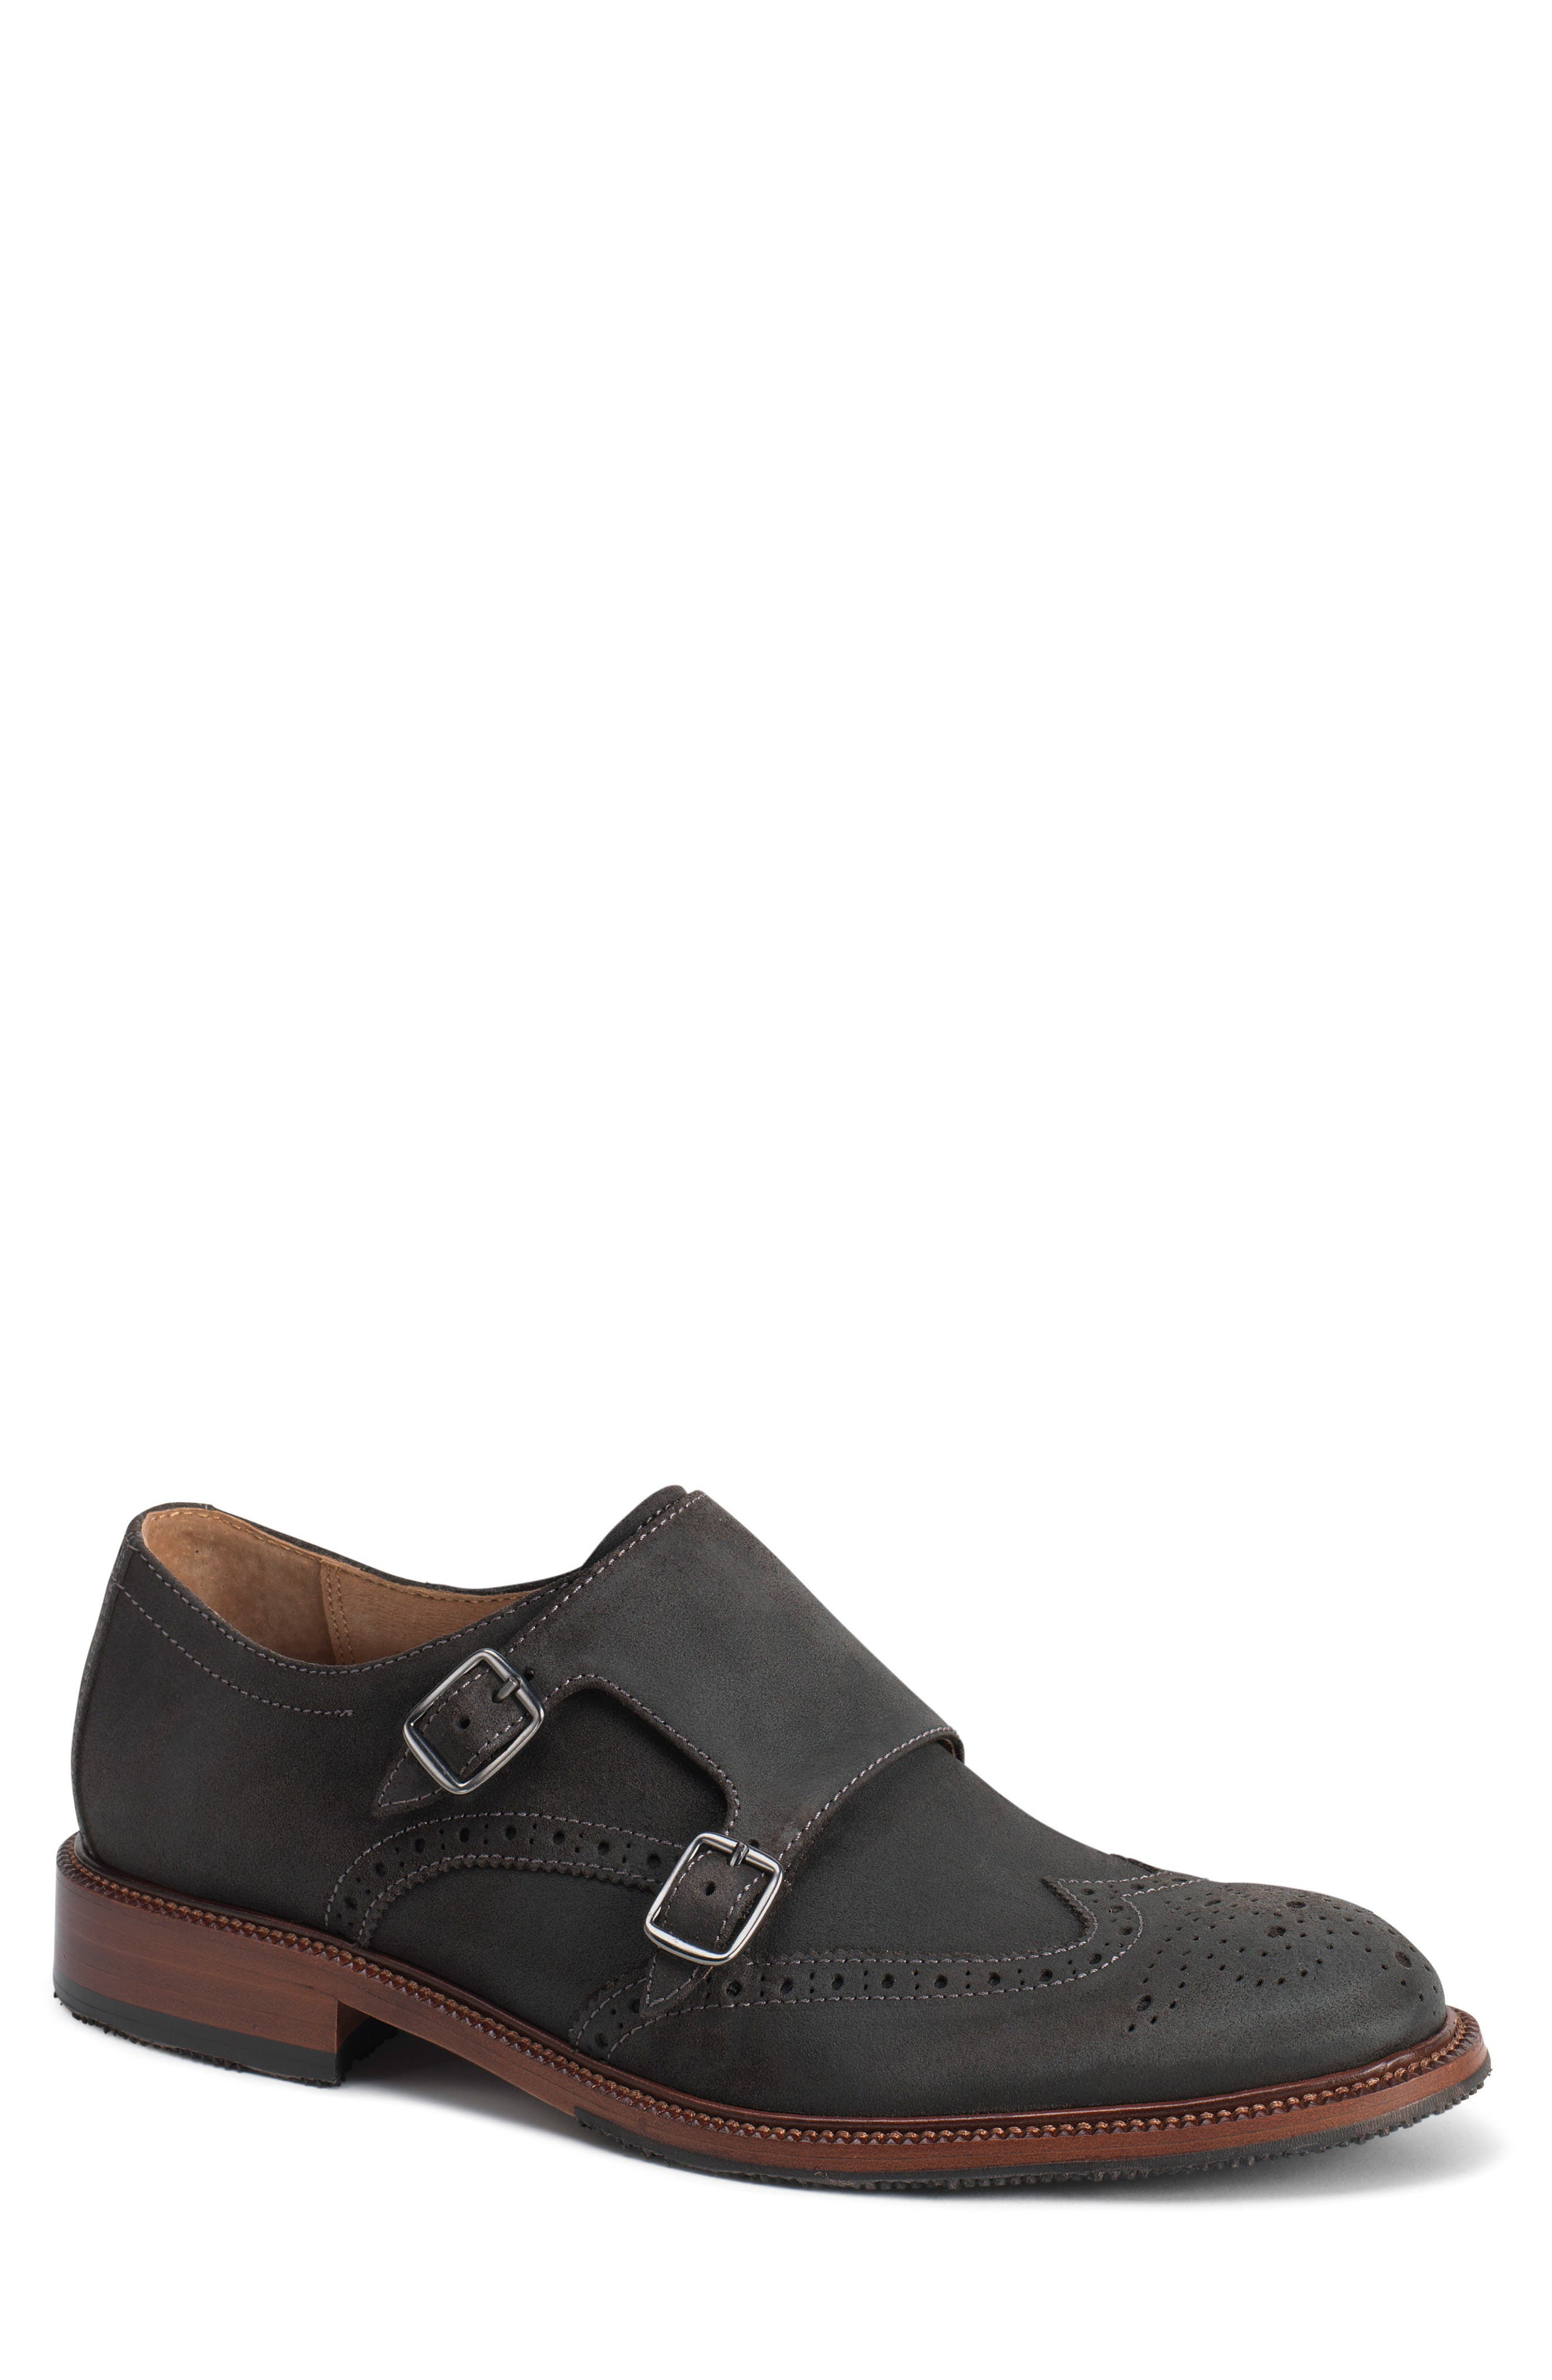 TRASK Leland Double Monk Strap Shoe, Main, color, GRAY WAXED SUEDE